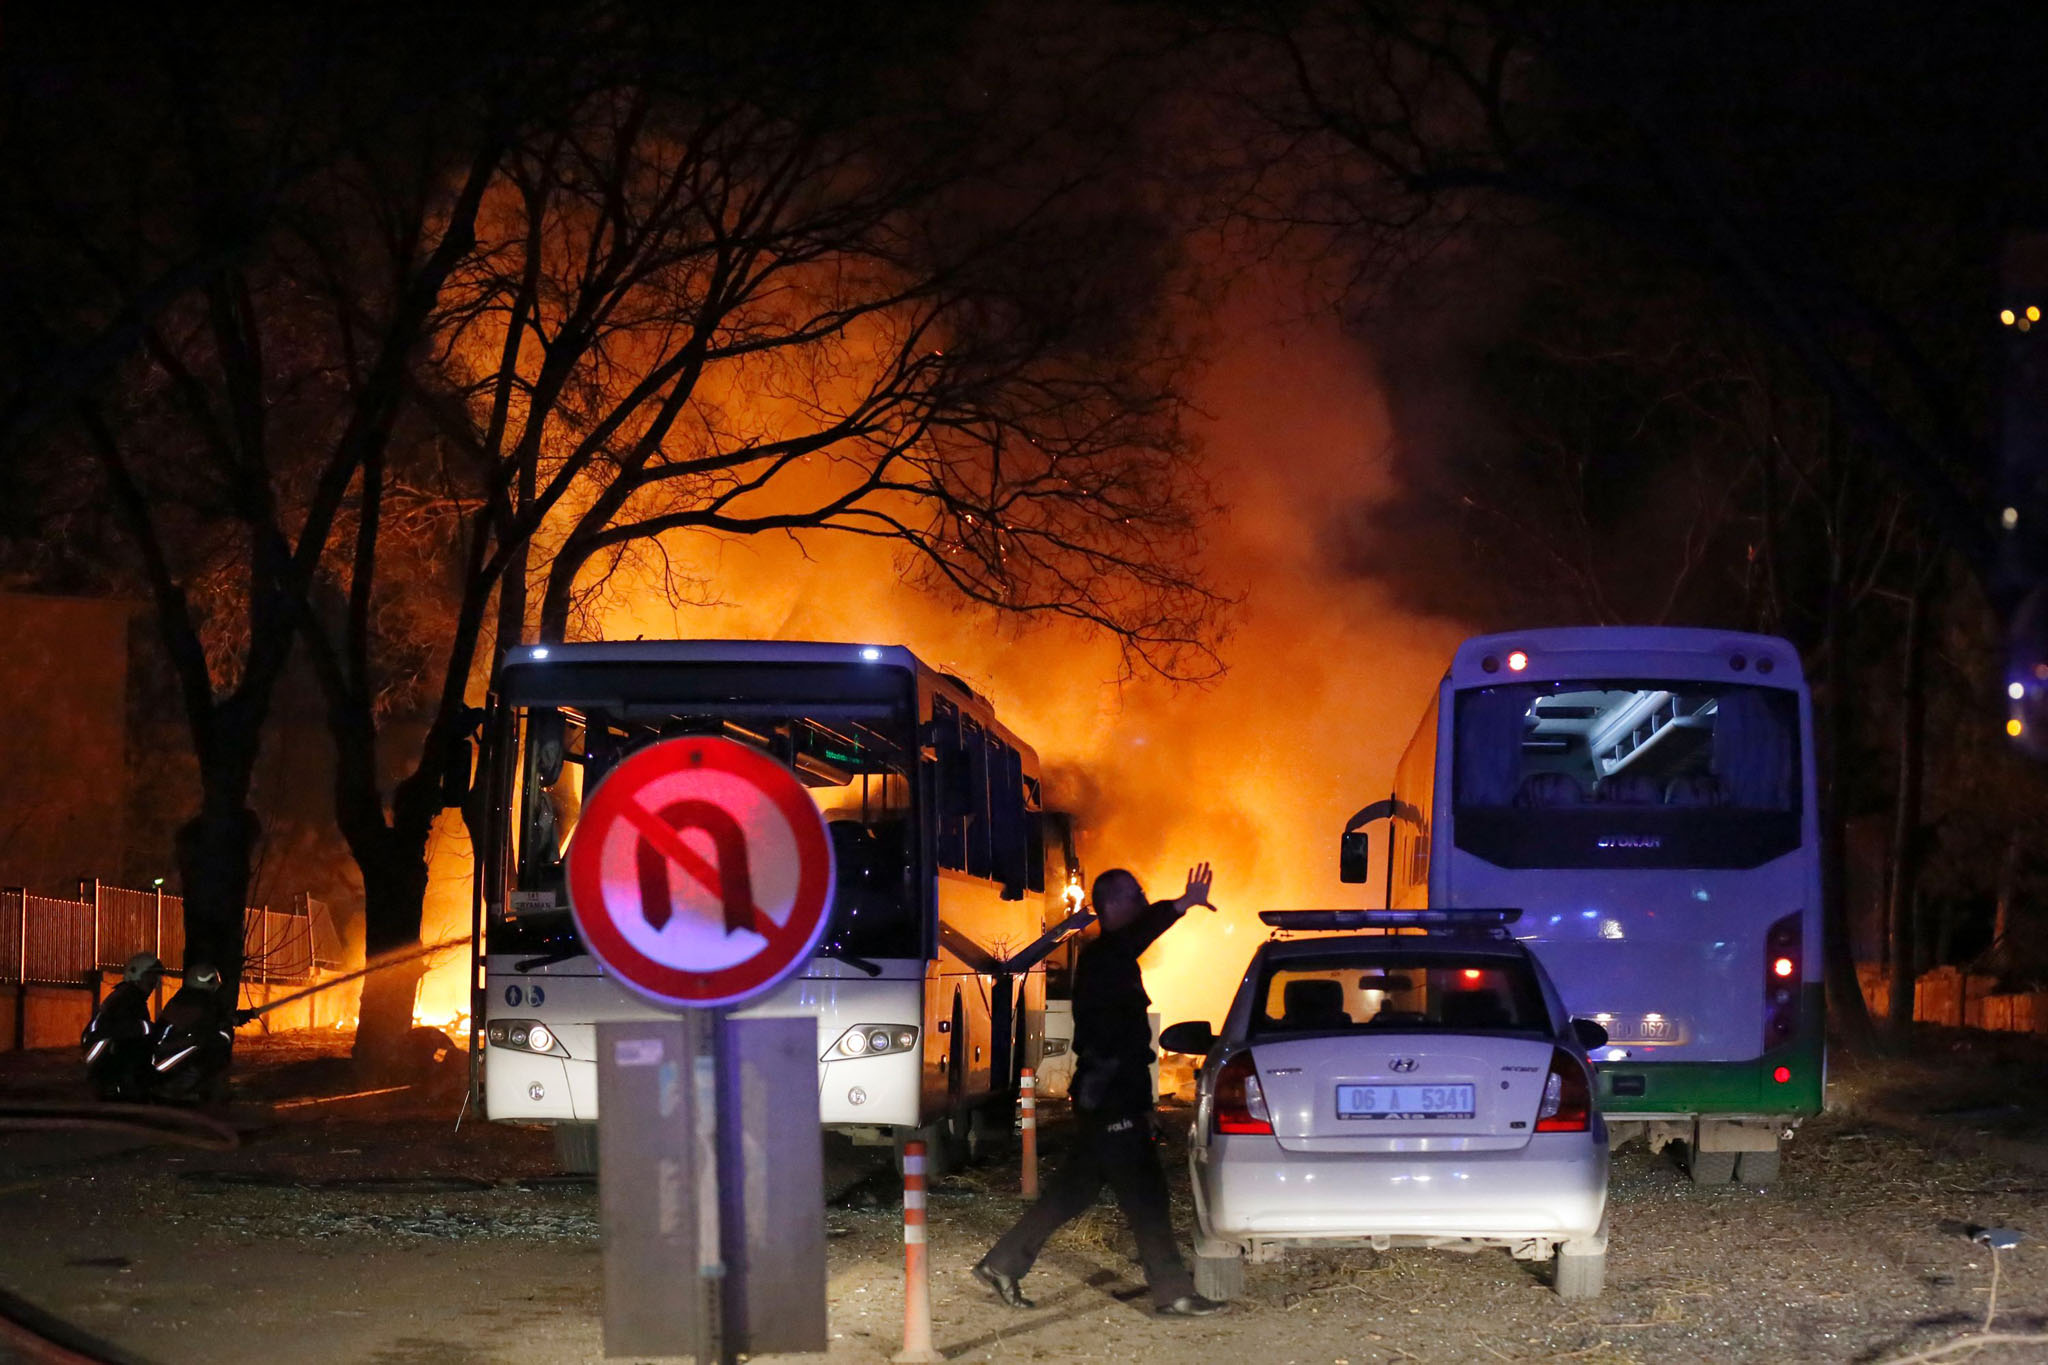 A police officer gestures as he walks at the site of an explosion while firefighters try to extinguish flames after an attack targeted a convoy of military service vehicles in Ankara